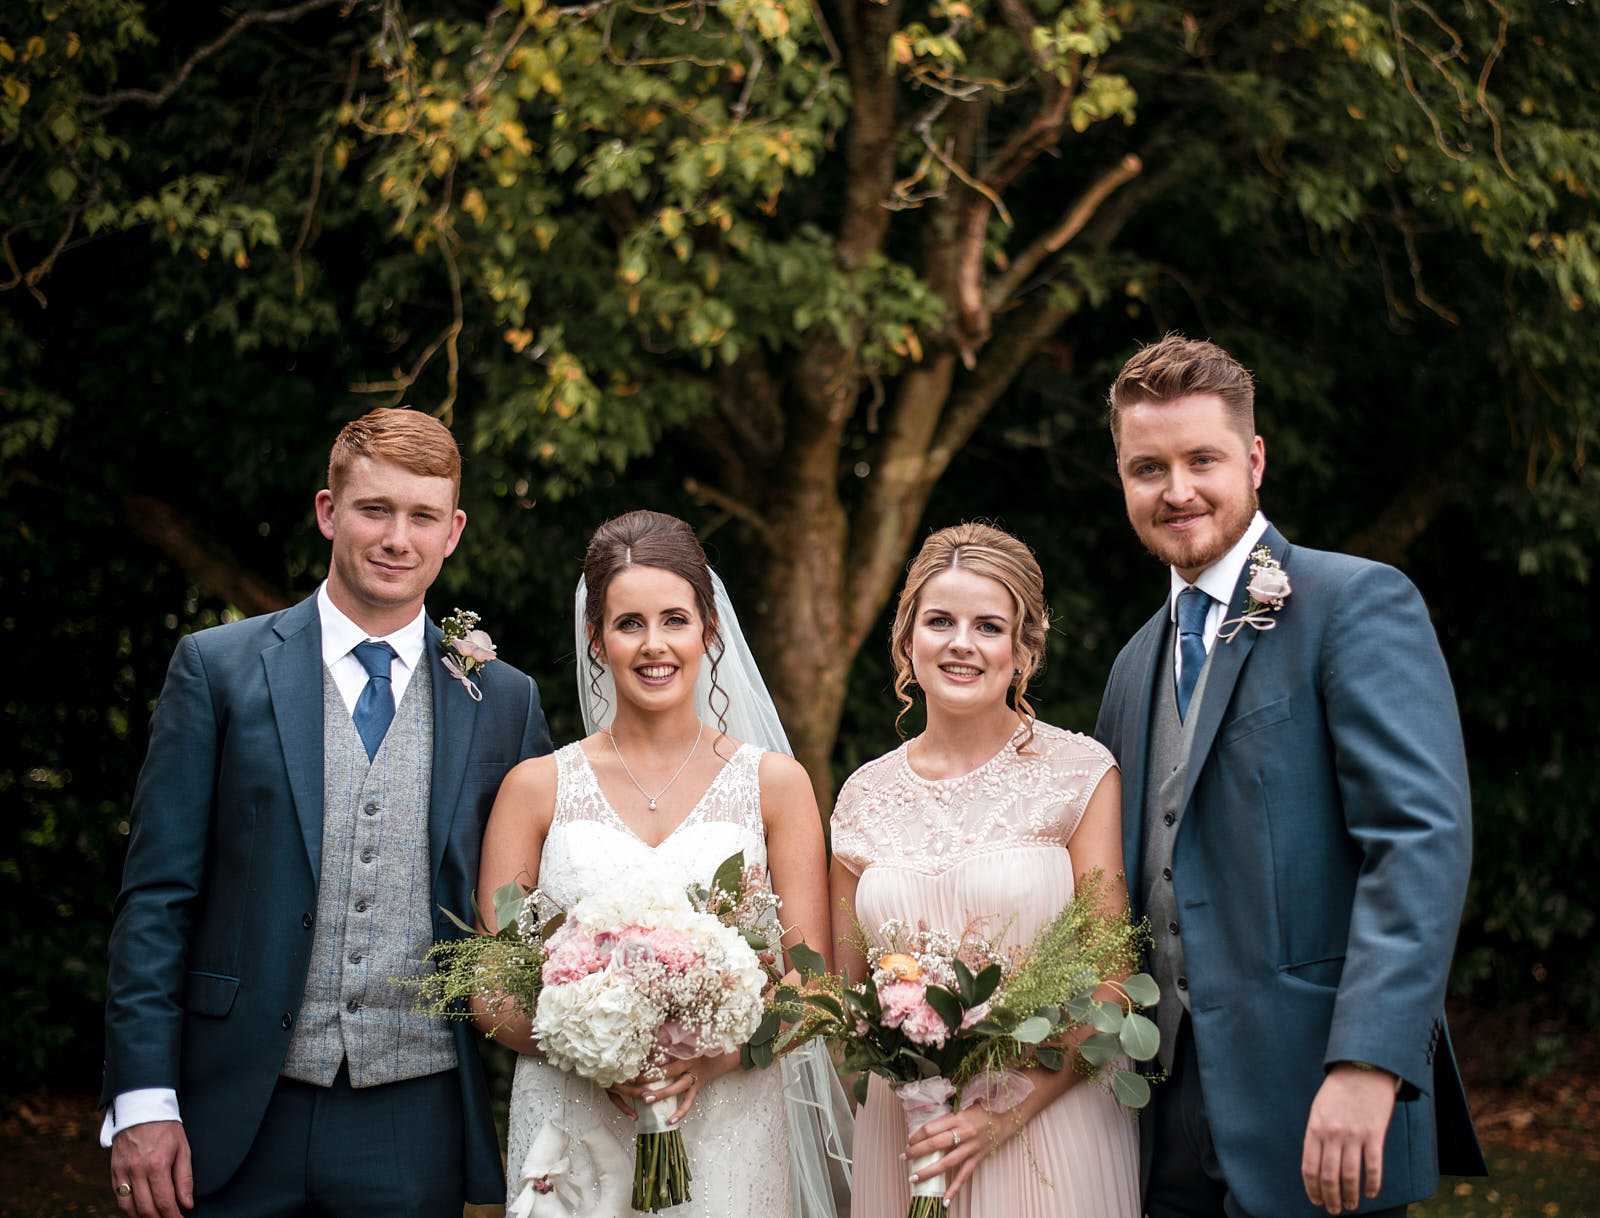 My first wedding in Bedfordshire Pristine View Photography - Wedding Photographer Bedfordshire, Hertfordshire, London and surrounding areas.